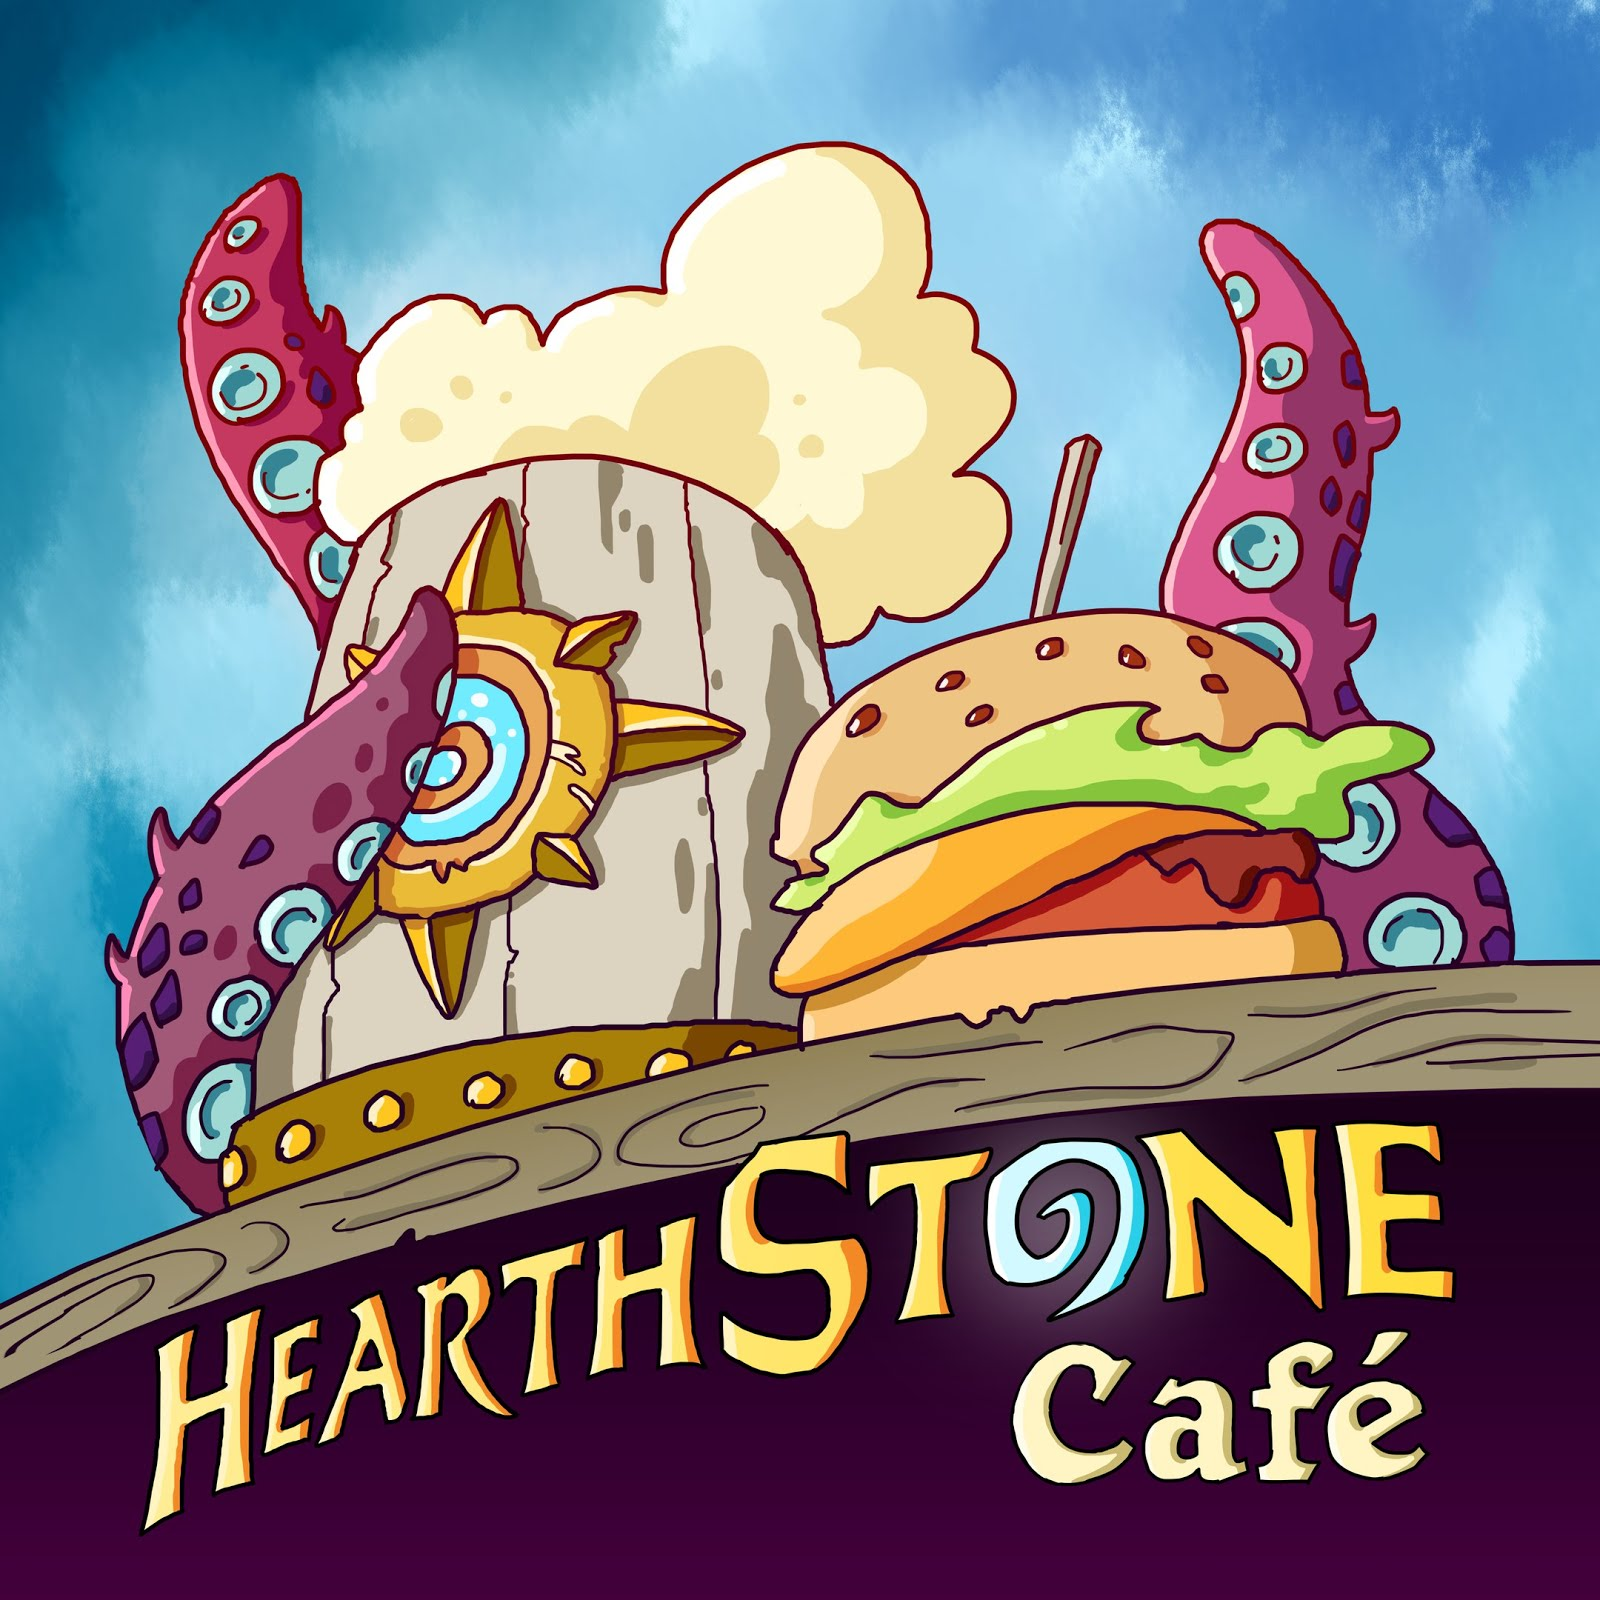 Hearthstone Cafe